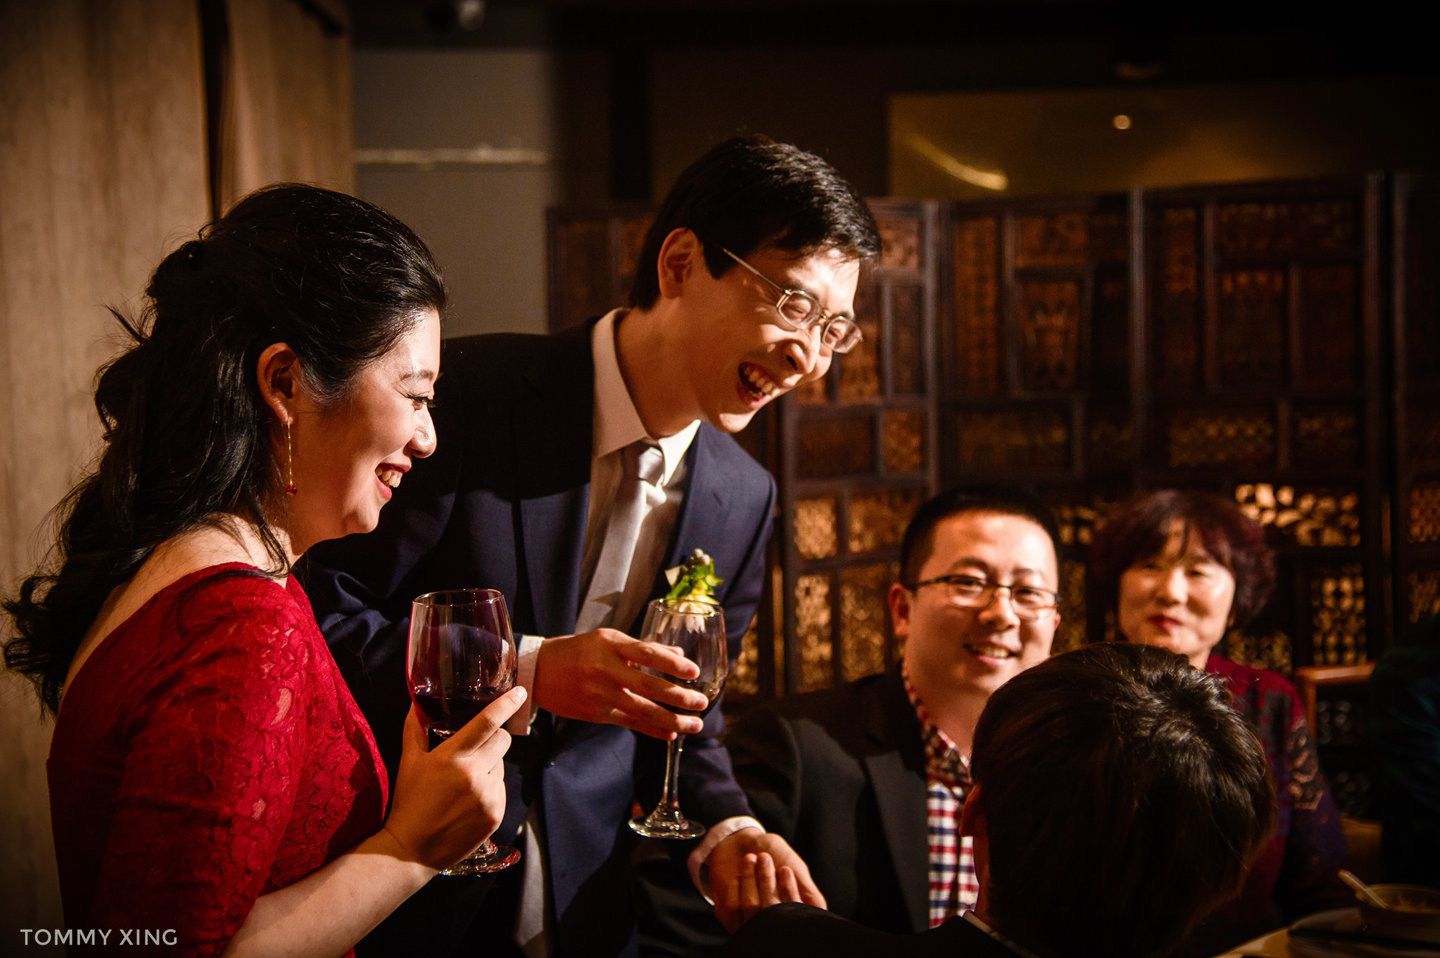 San Francisco Wedding Photography Valley Presbyterian Church WEDDING Tommy Xing Photography 洛杉矶旧金山婚礼婚纱照摄影师120.jpg